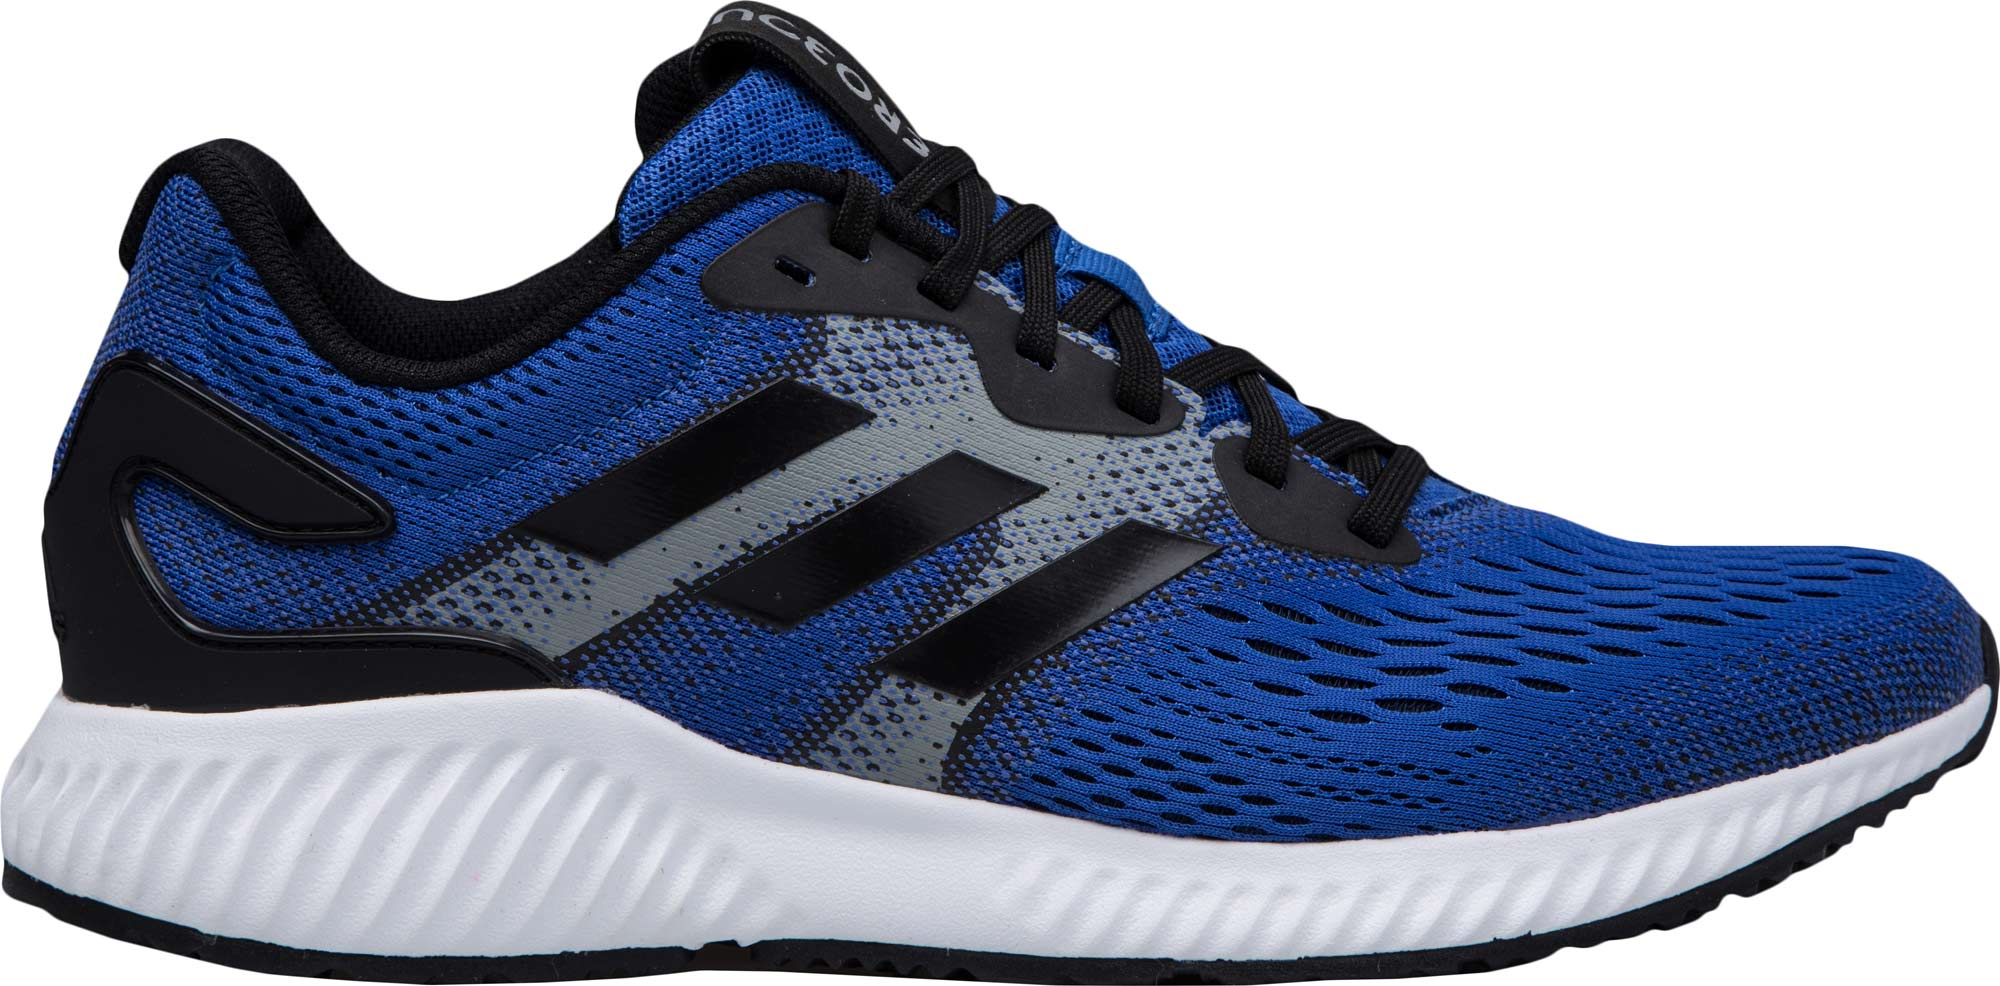 192d06a80466a Adidas ultra ultra boost 2 boost is the world s  25 best adidas running  shoe (1238 ratings + 47 experts).